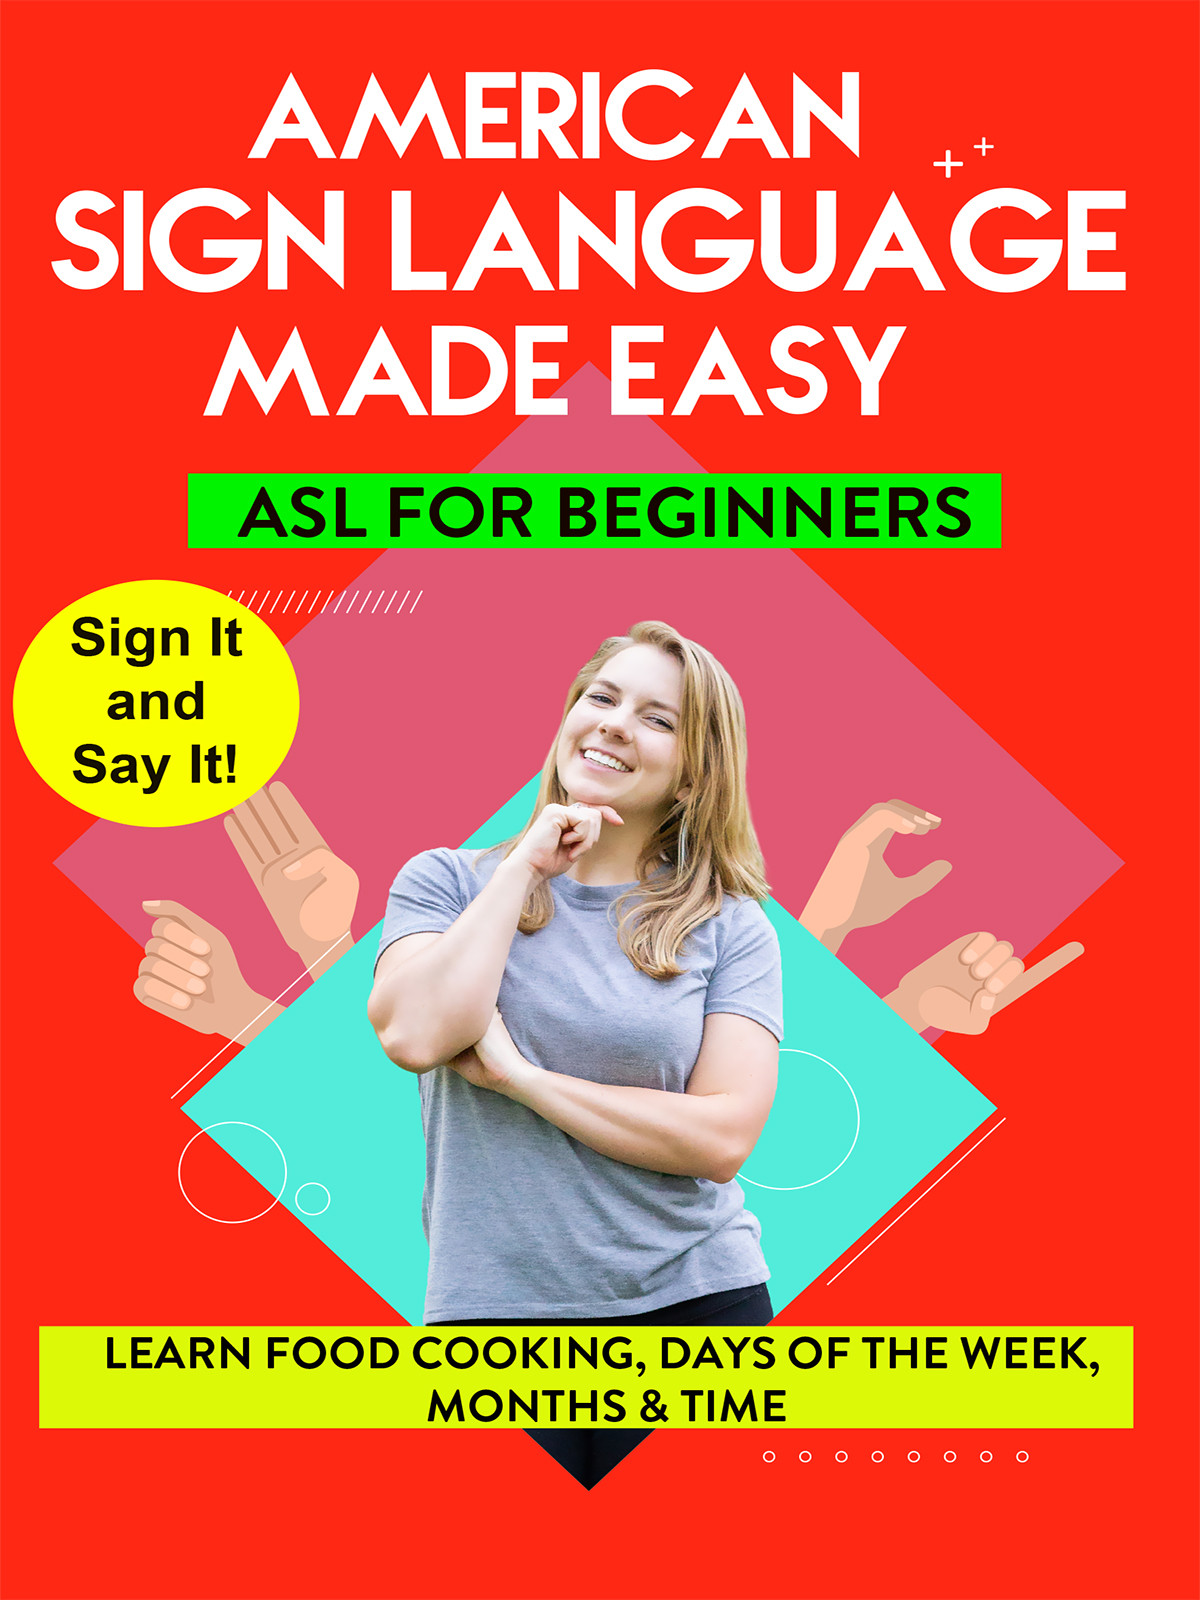 K9804 - ASL - Learn Food, Cooking, Days of the Week, Months & Time